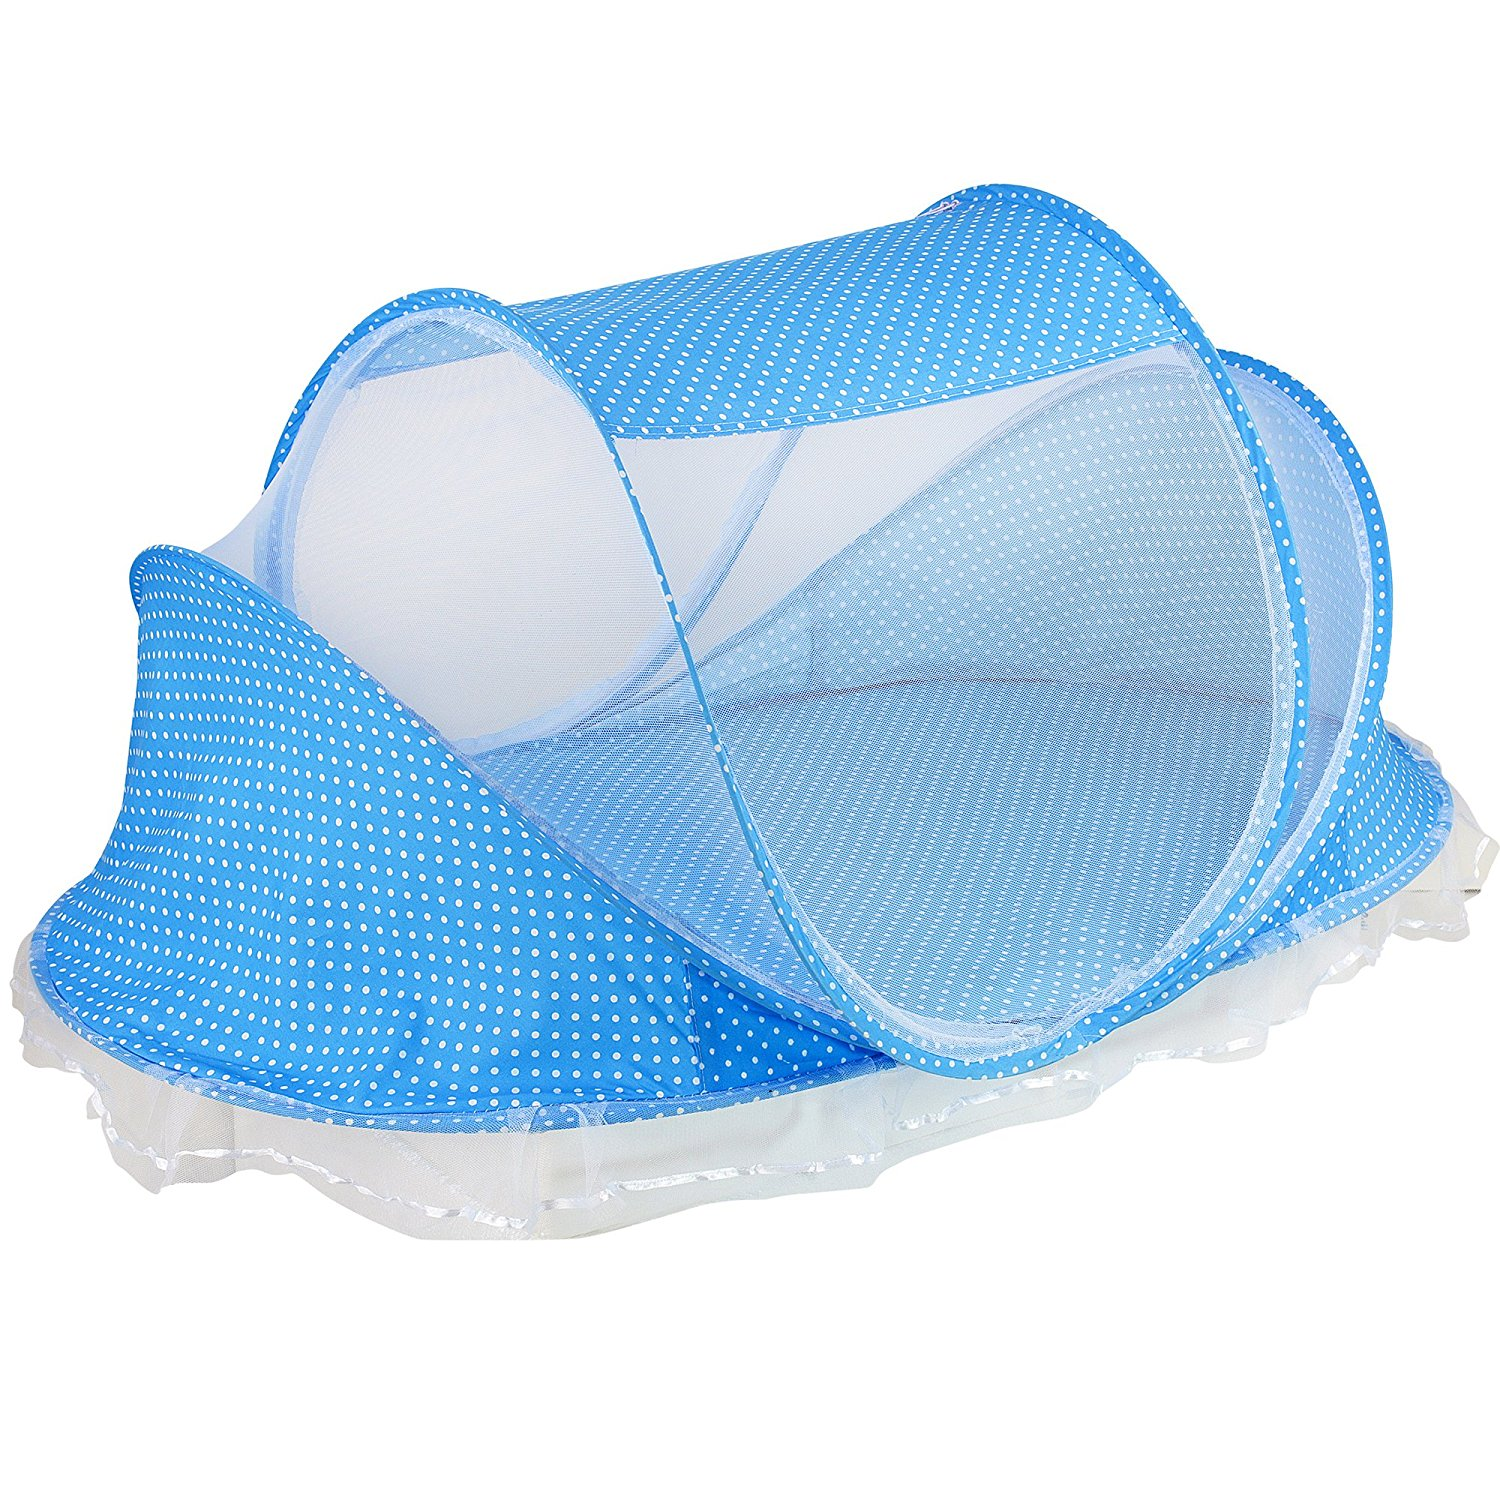 Portable Baby Crib Mosquito Net Tent Multi-Function Cradle Bed Infant Foldable Mosquito Netting With Pad For Girls Bed